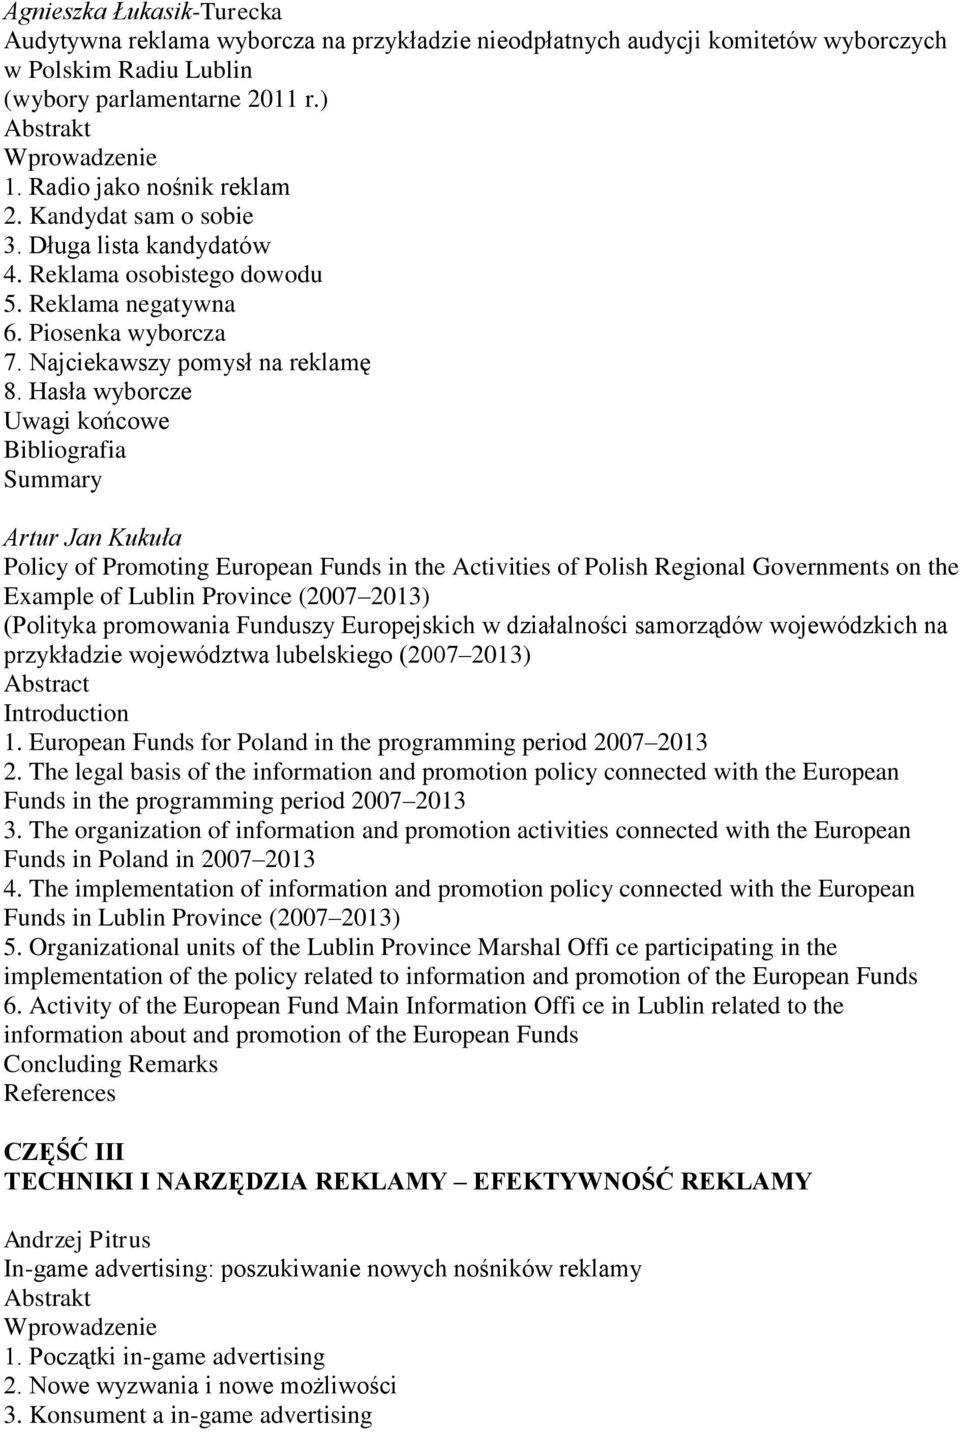 Hasła wyborcze Artur Jan Kukuła Policy of Promoting European Funds in the Activities of Polish Regional Governments on the Example of Lublin Province (2007 2013) (Polityka promowania Funduszy